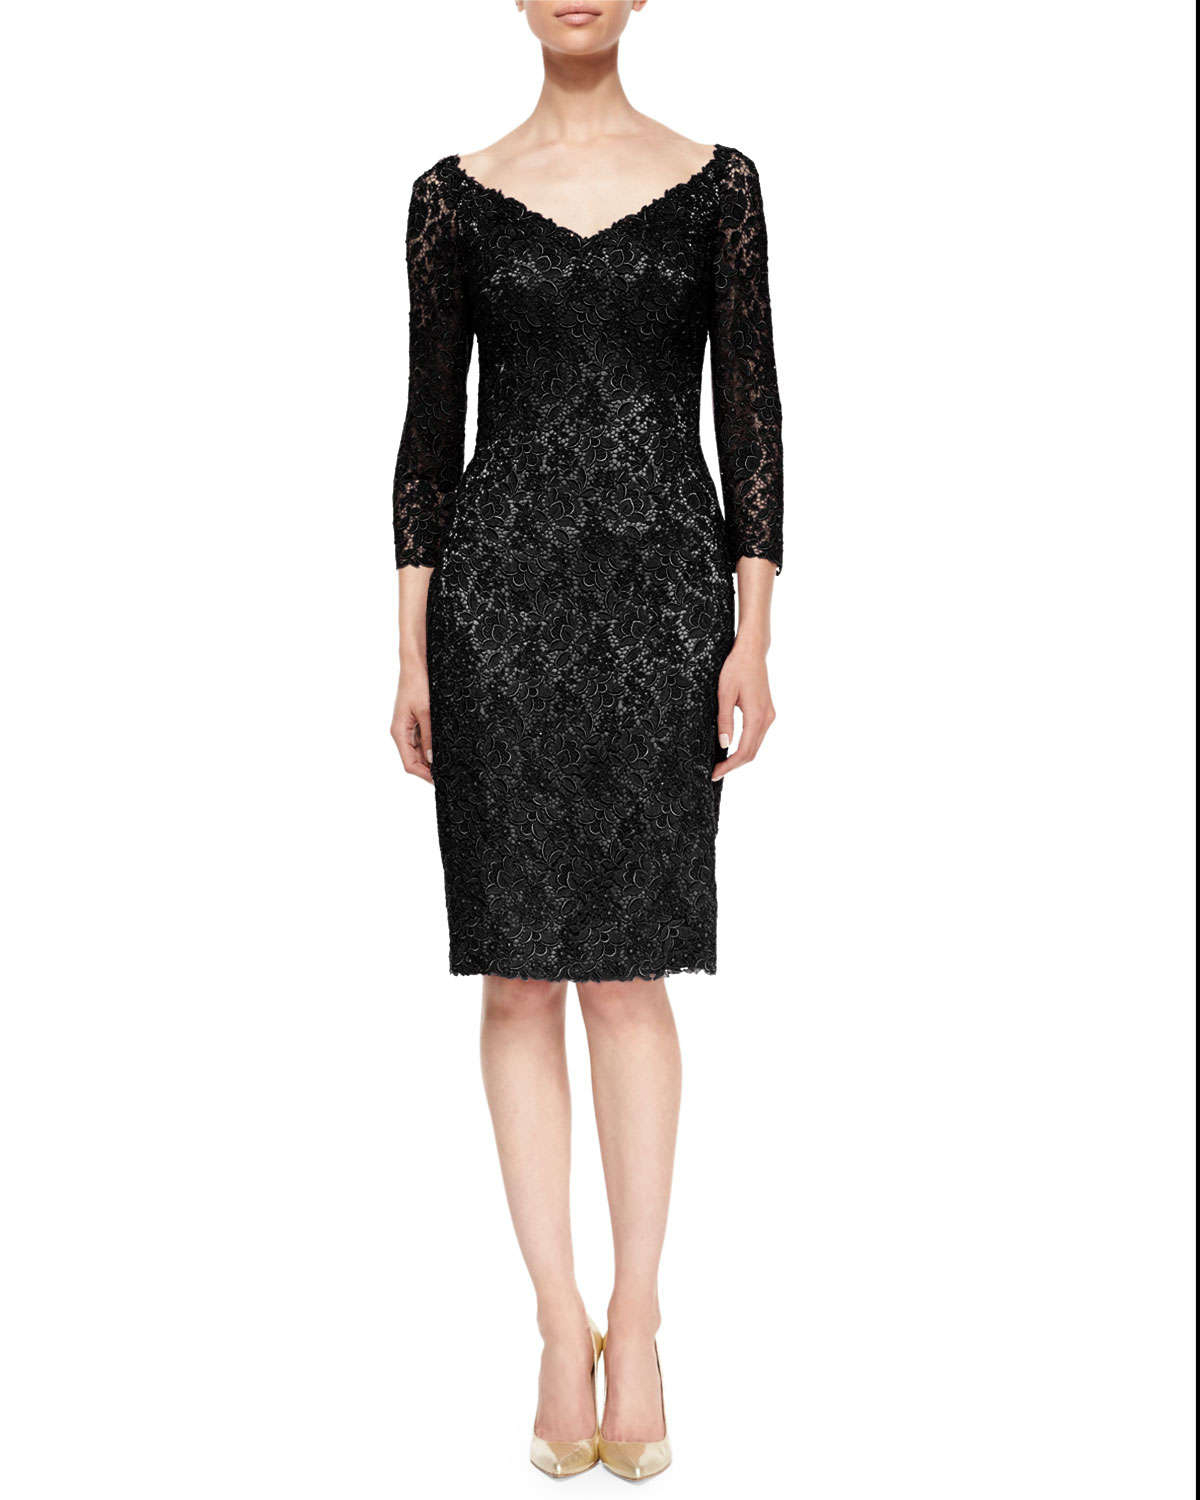 Helen morley 3/4-sleeve Floral Lace Cocktail Dress in Black | Lyst